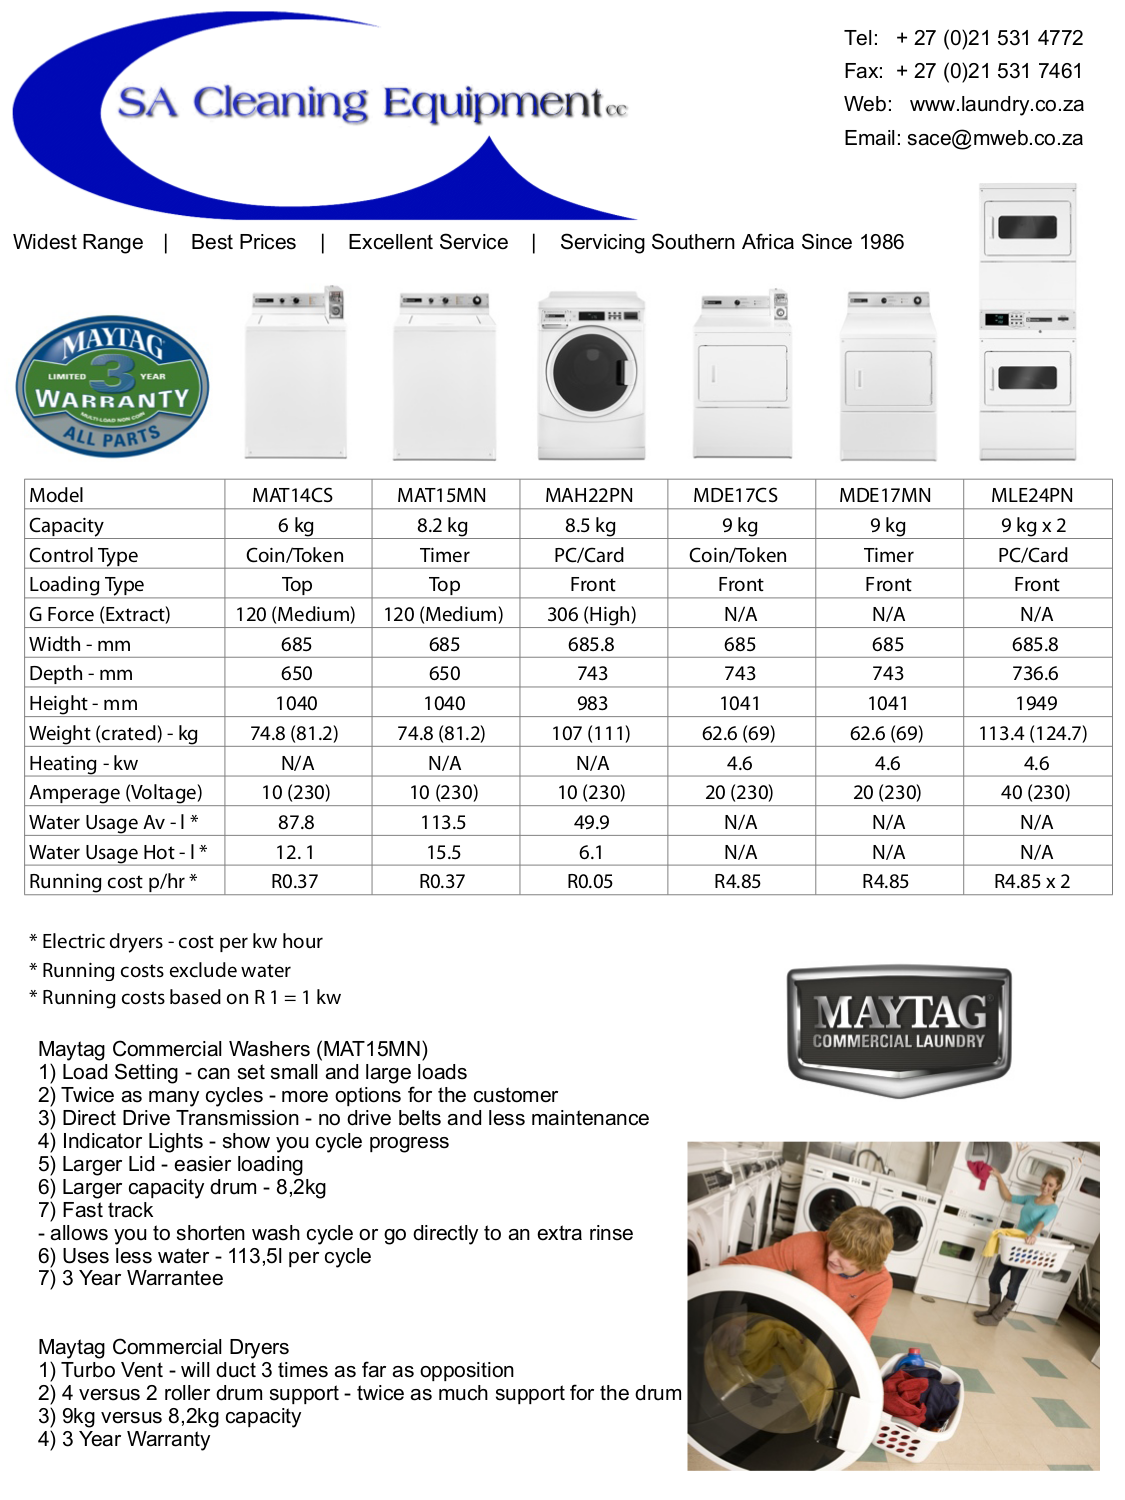 Download Free Pdf For Maytag Mde17mn Dryer Manual Electric Parts Diagrams